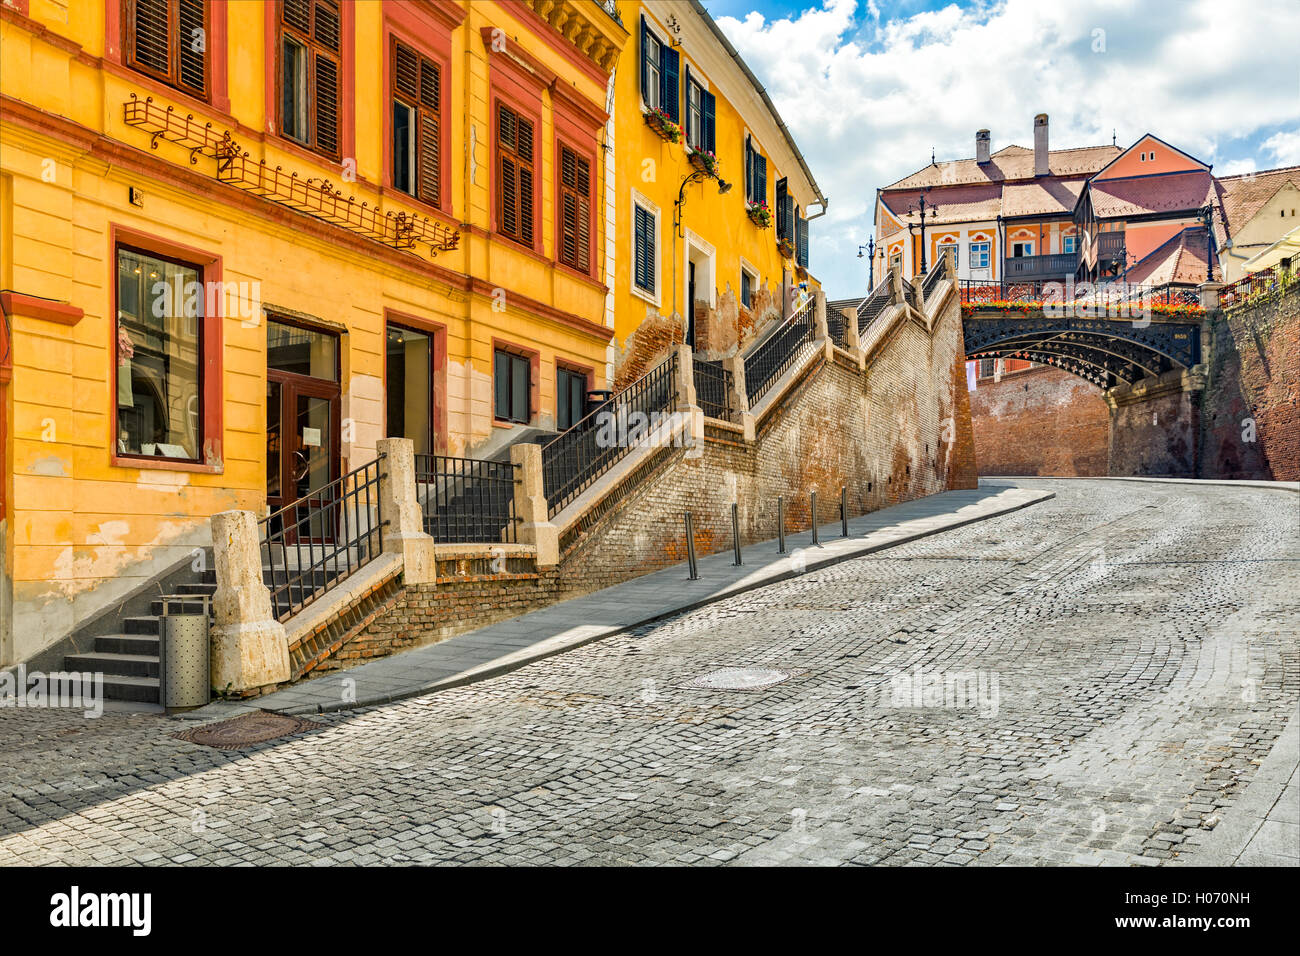 Cobblestone street passes under The Bridge of Lies, a landmark of the old town of Sibiu, Romania - Stock Image